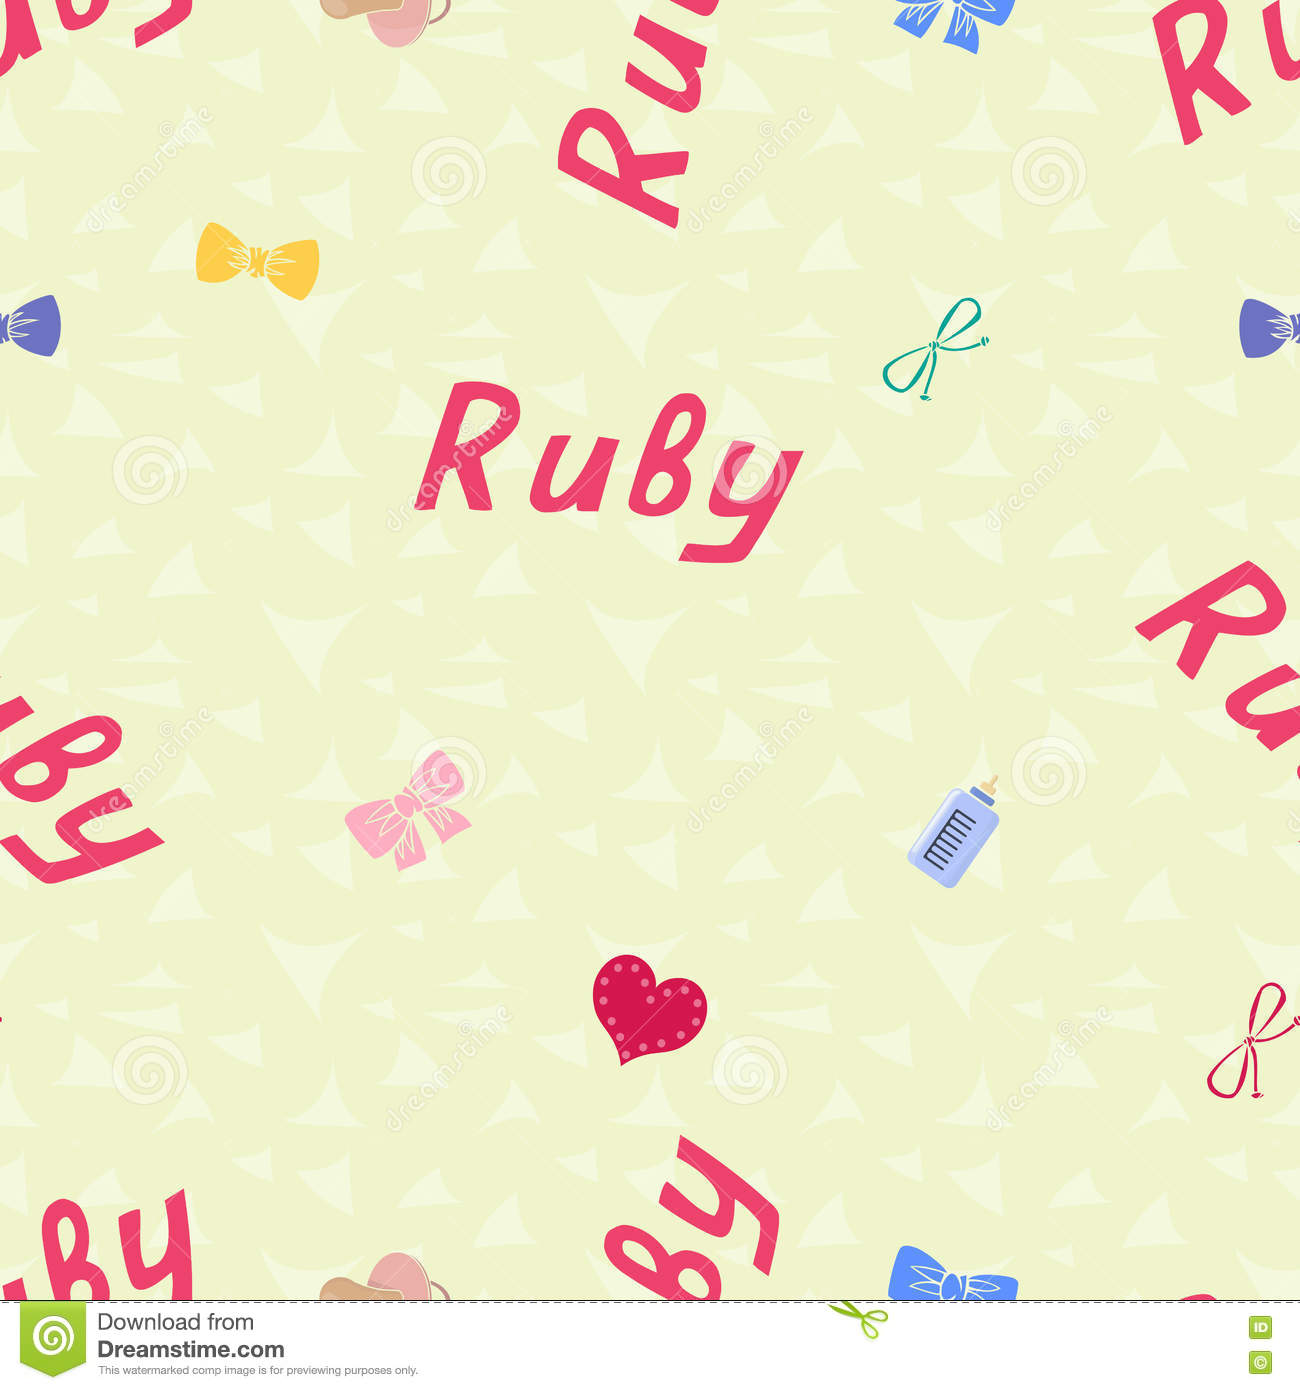 Ruby Name Stock Illustrations 84 Ruby Name Stock Illustrations Vectors Clipart Dreamstime